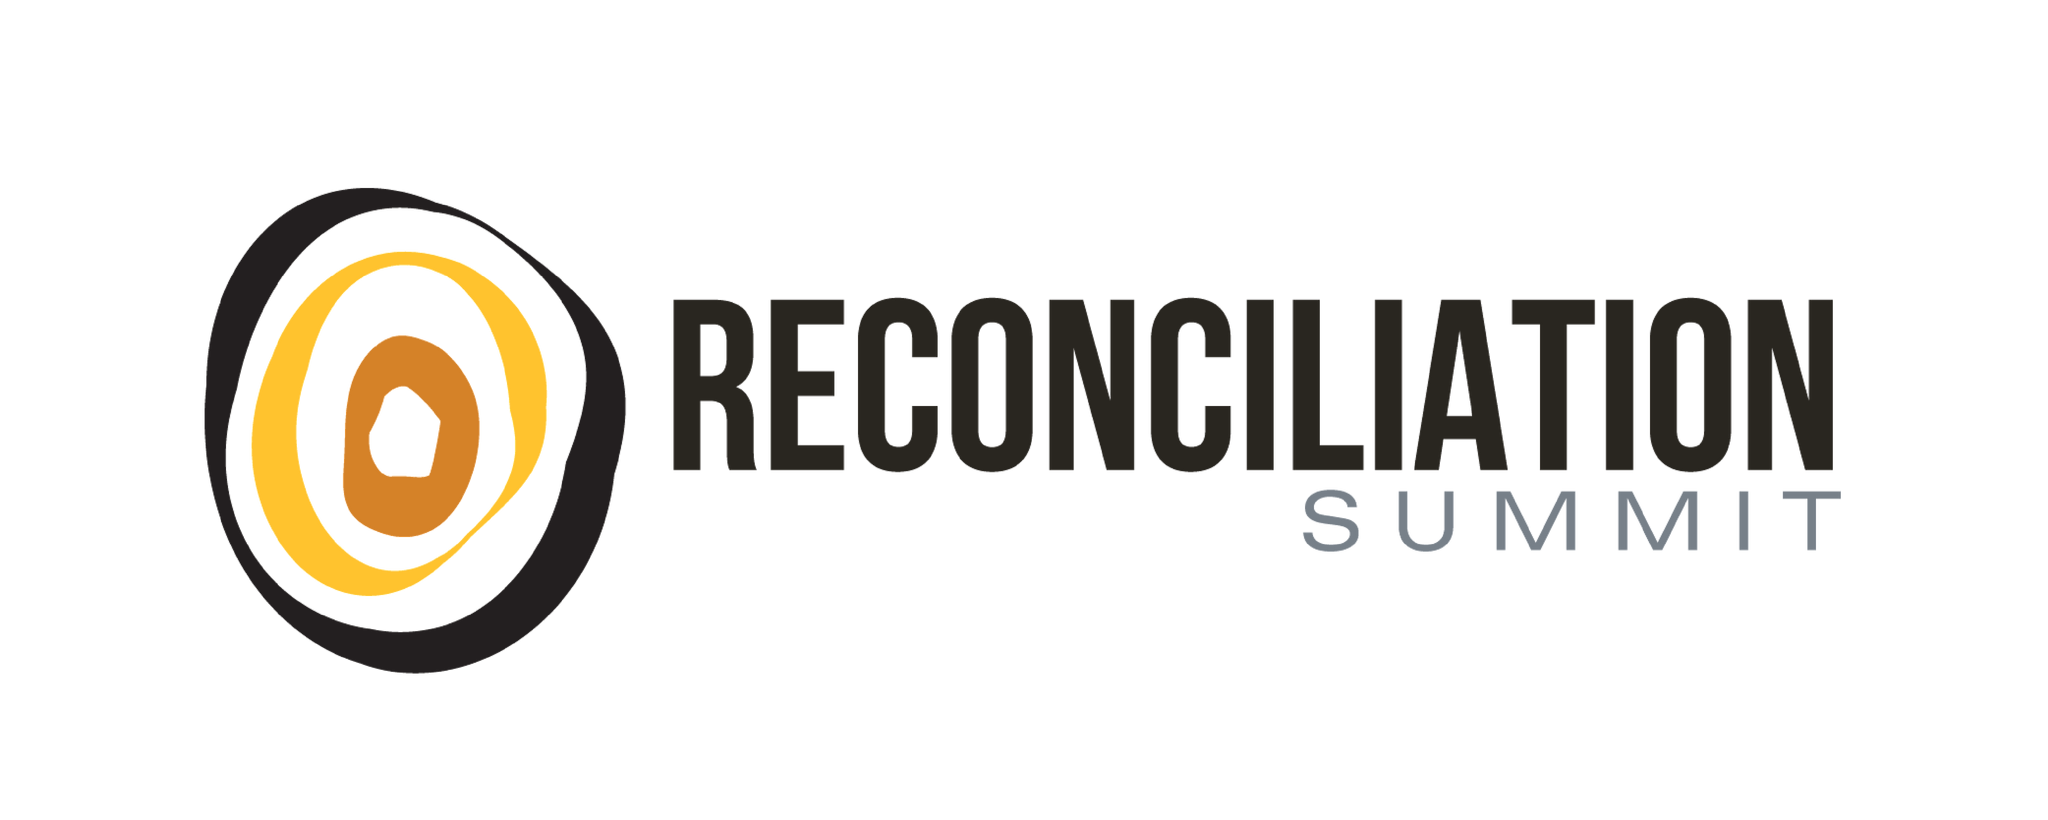 RECONCILIATION IN CONSTRUCTION